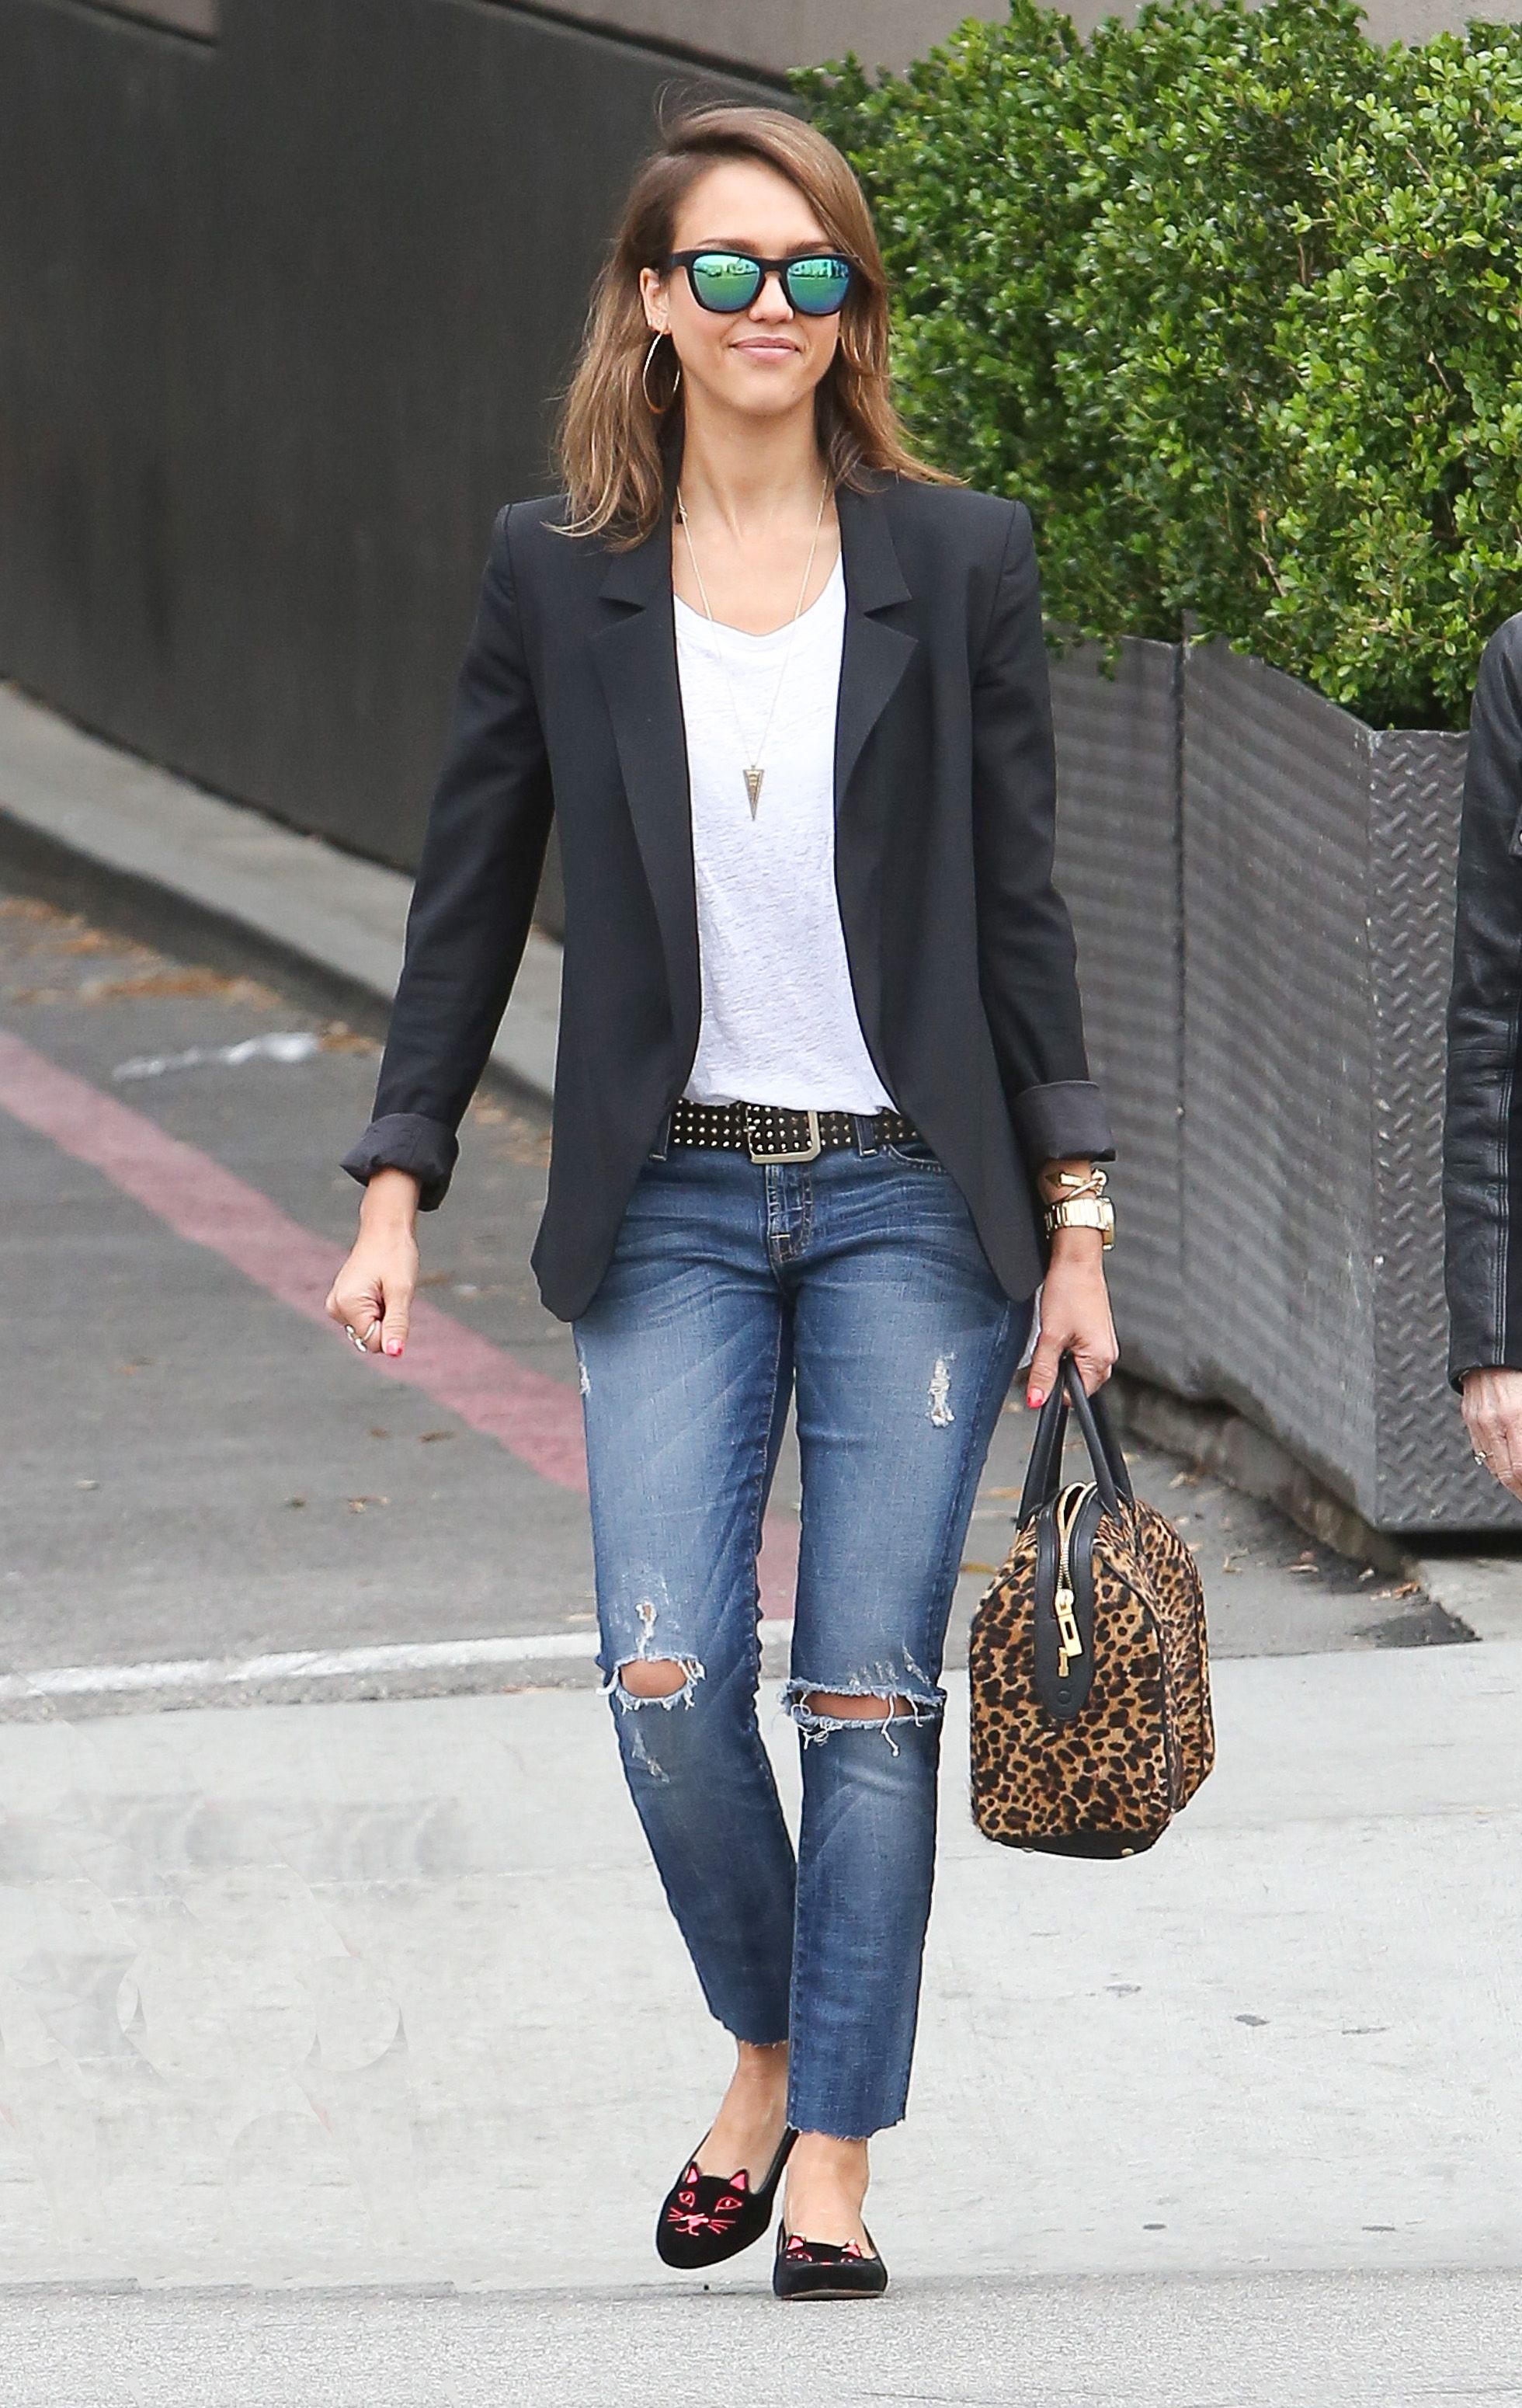 Jessica Alba Enters Fashion World with Jeans